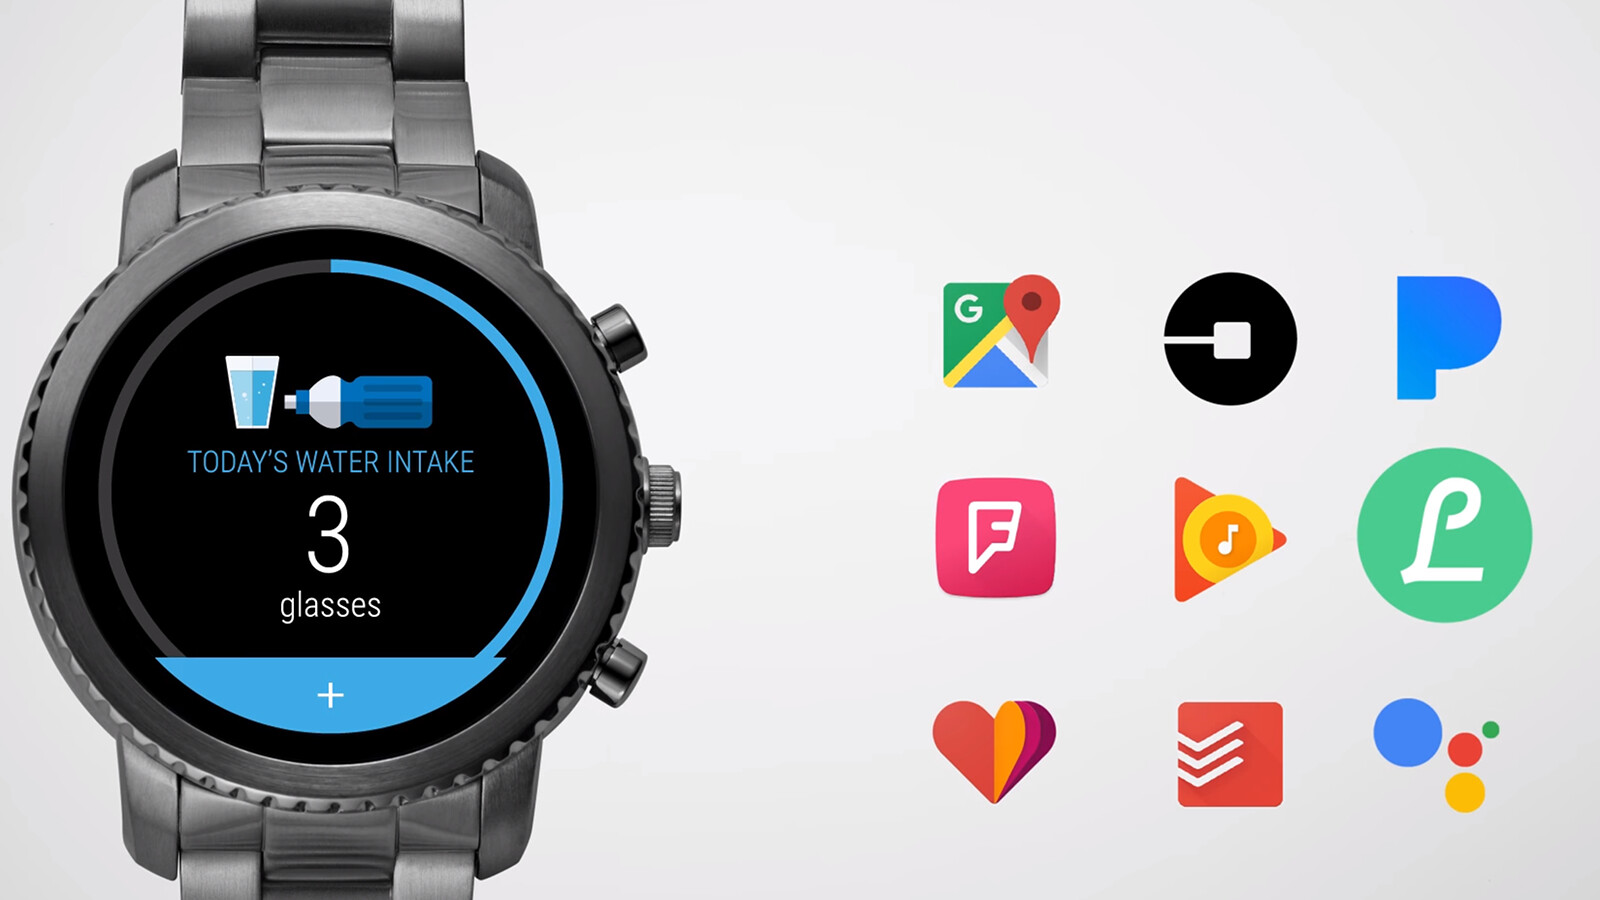 Seven Fossil smartwatches powered by Wear OS spotted ahead